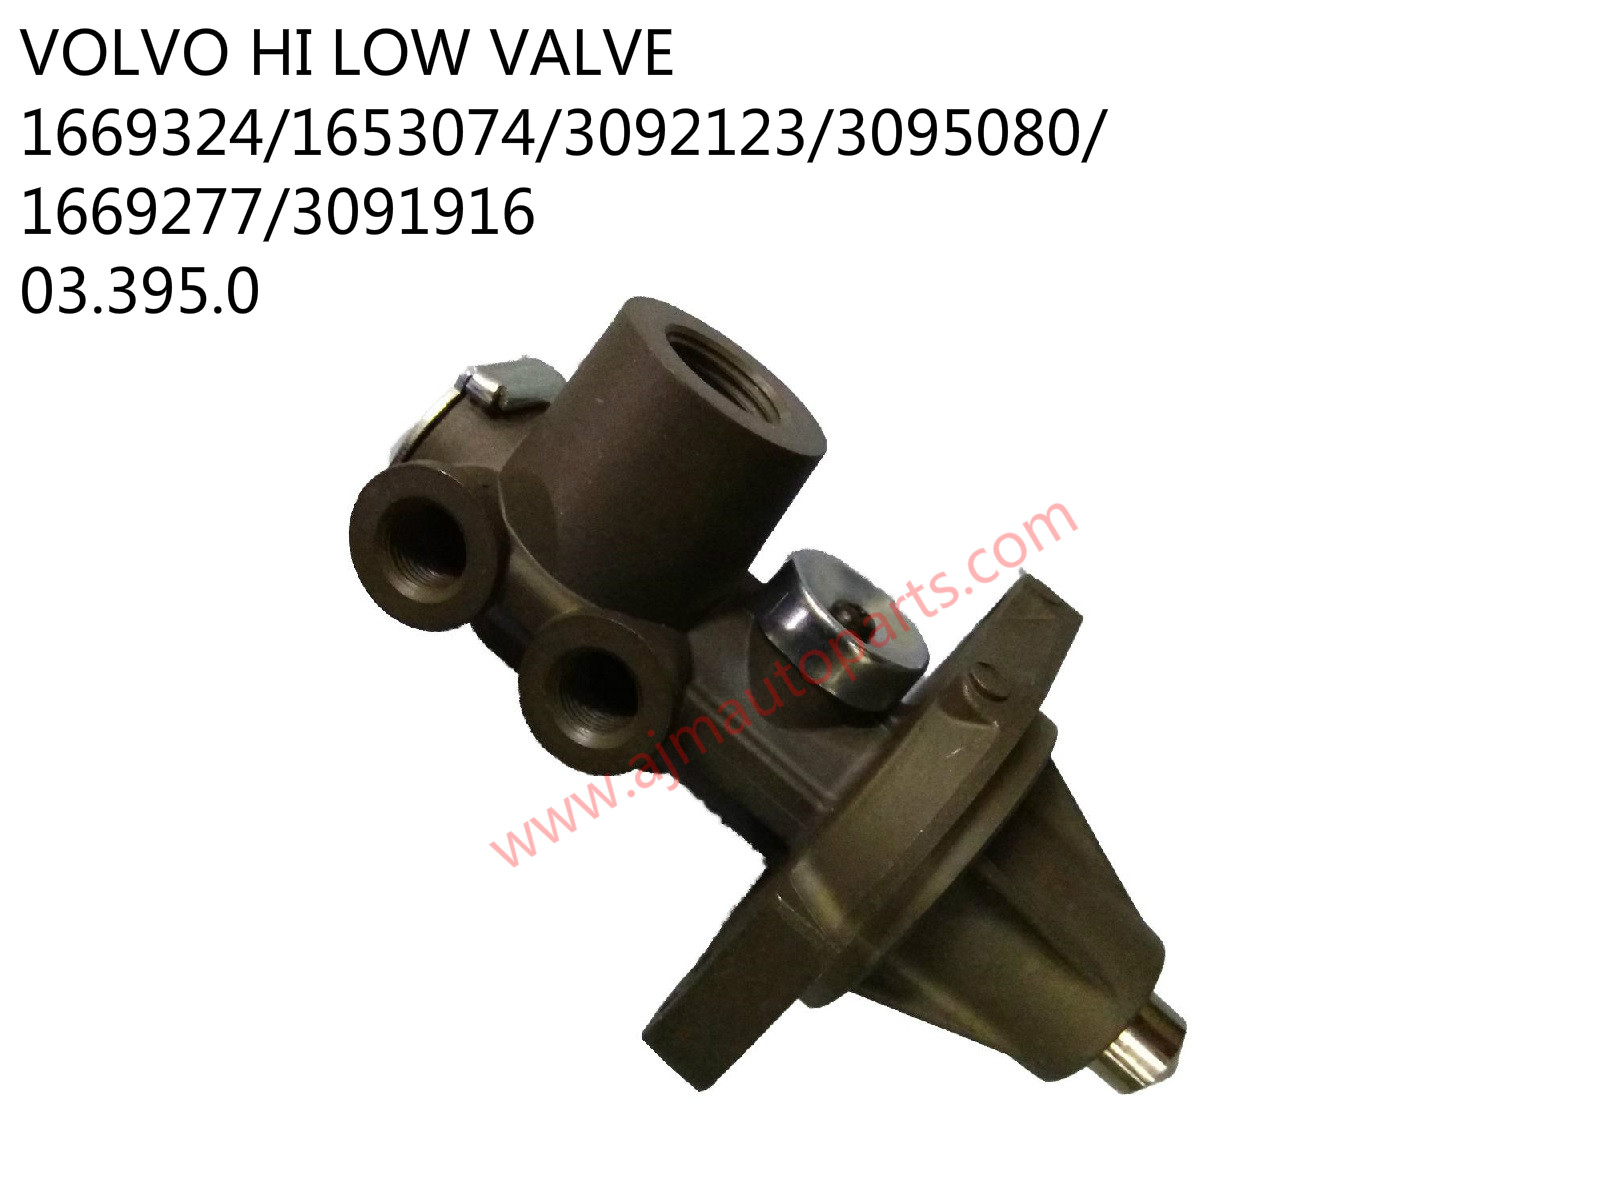 VOLVO HI LOW VALVE-1669324